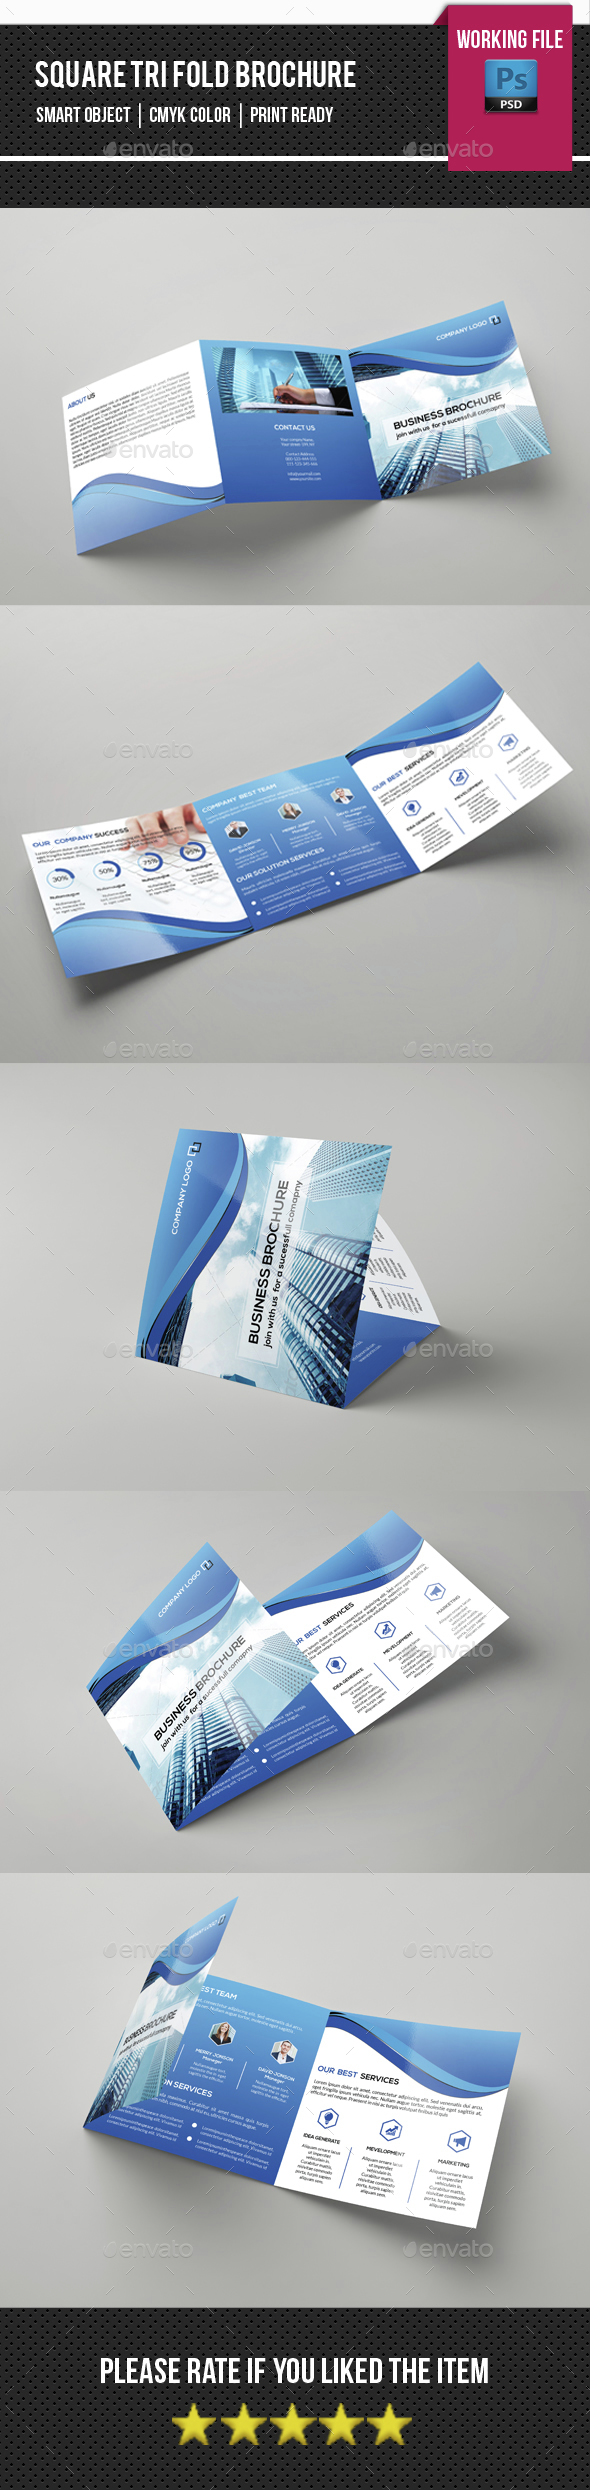 Corporate Square Trifold Brochure-V83 - Corporate Brochures